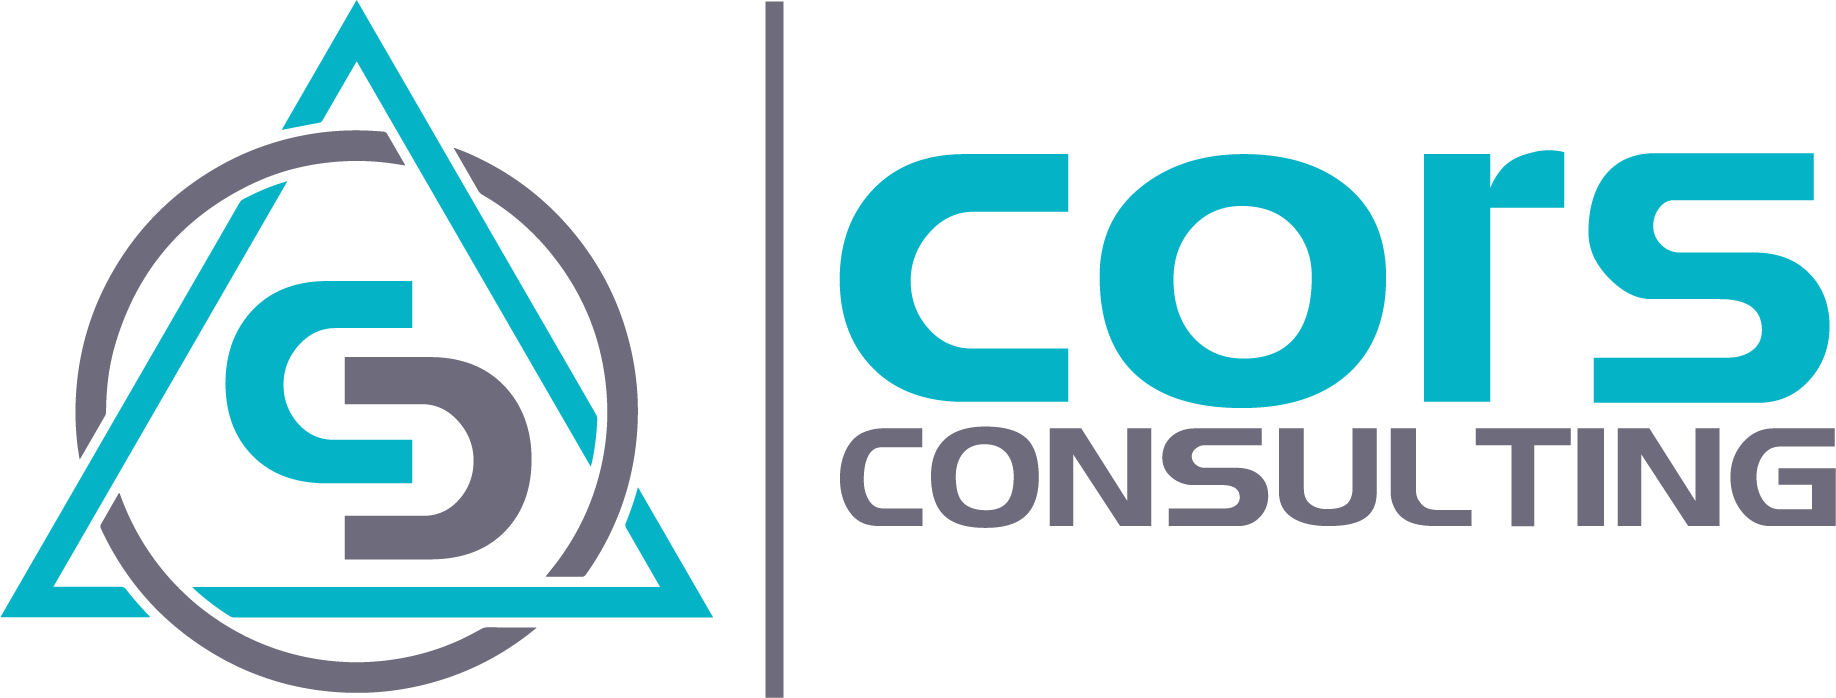 Cors Consulting